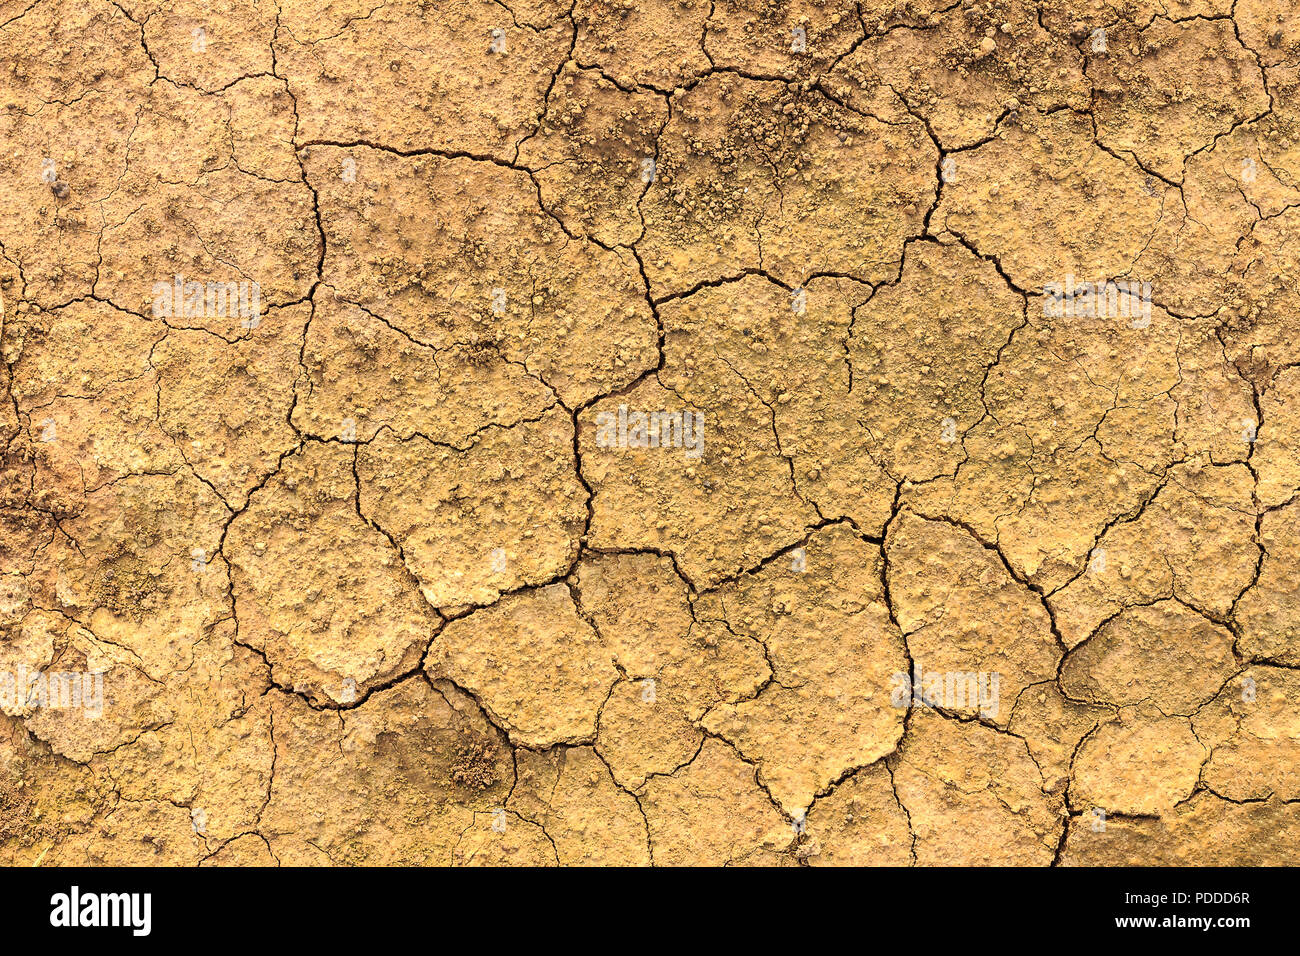 dry soil texture background - Stock Image